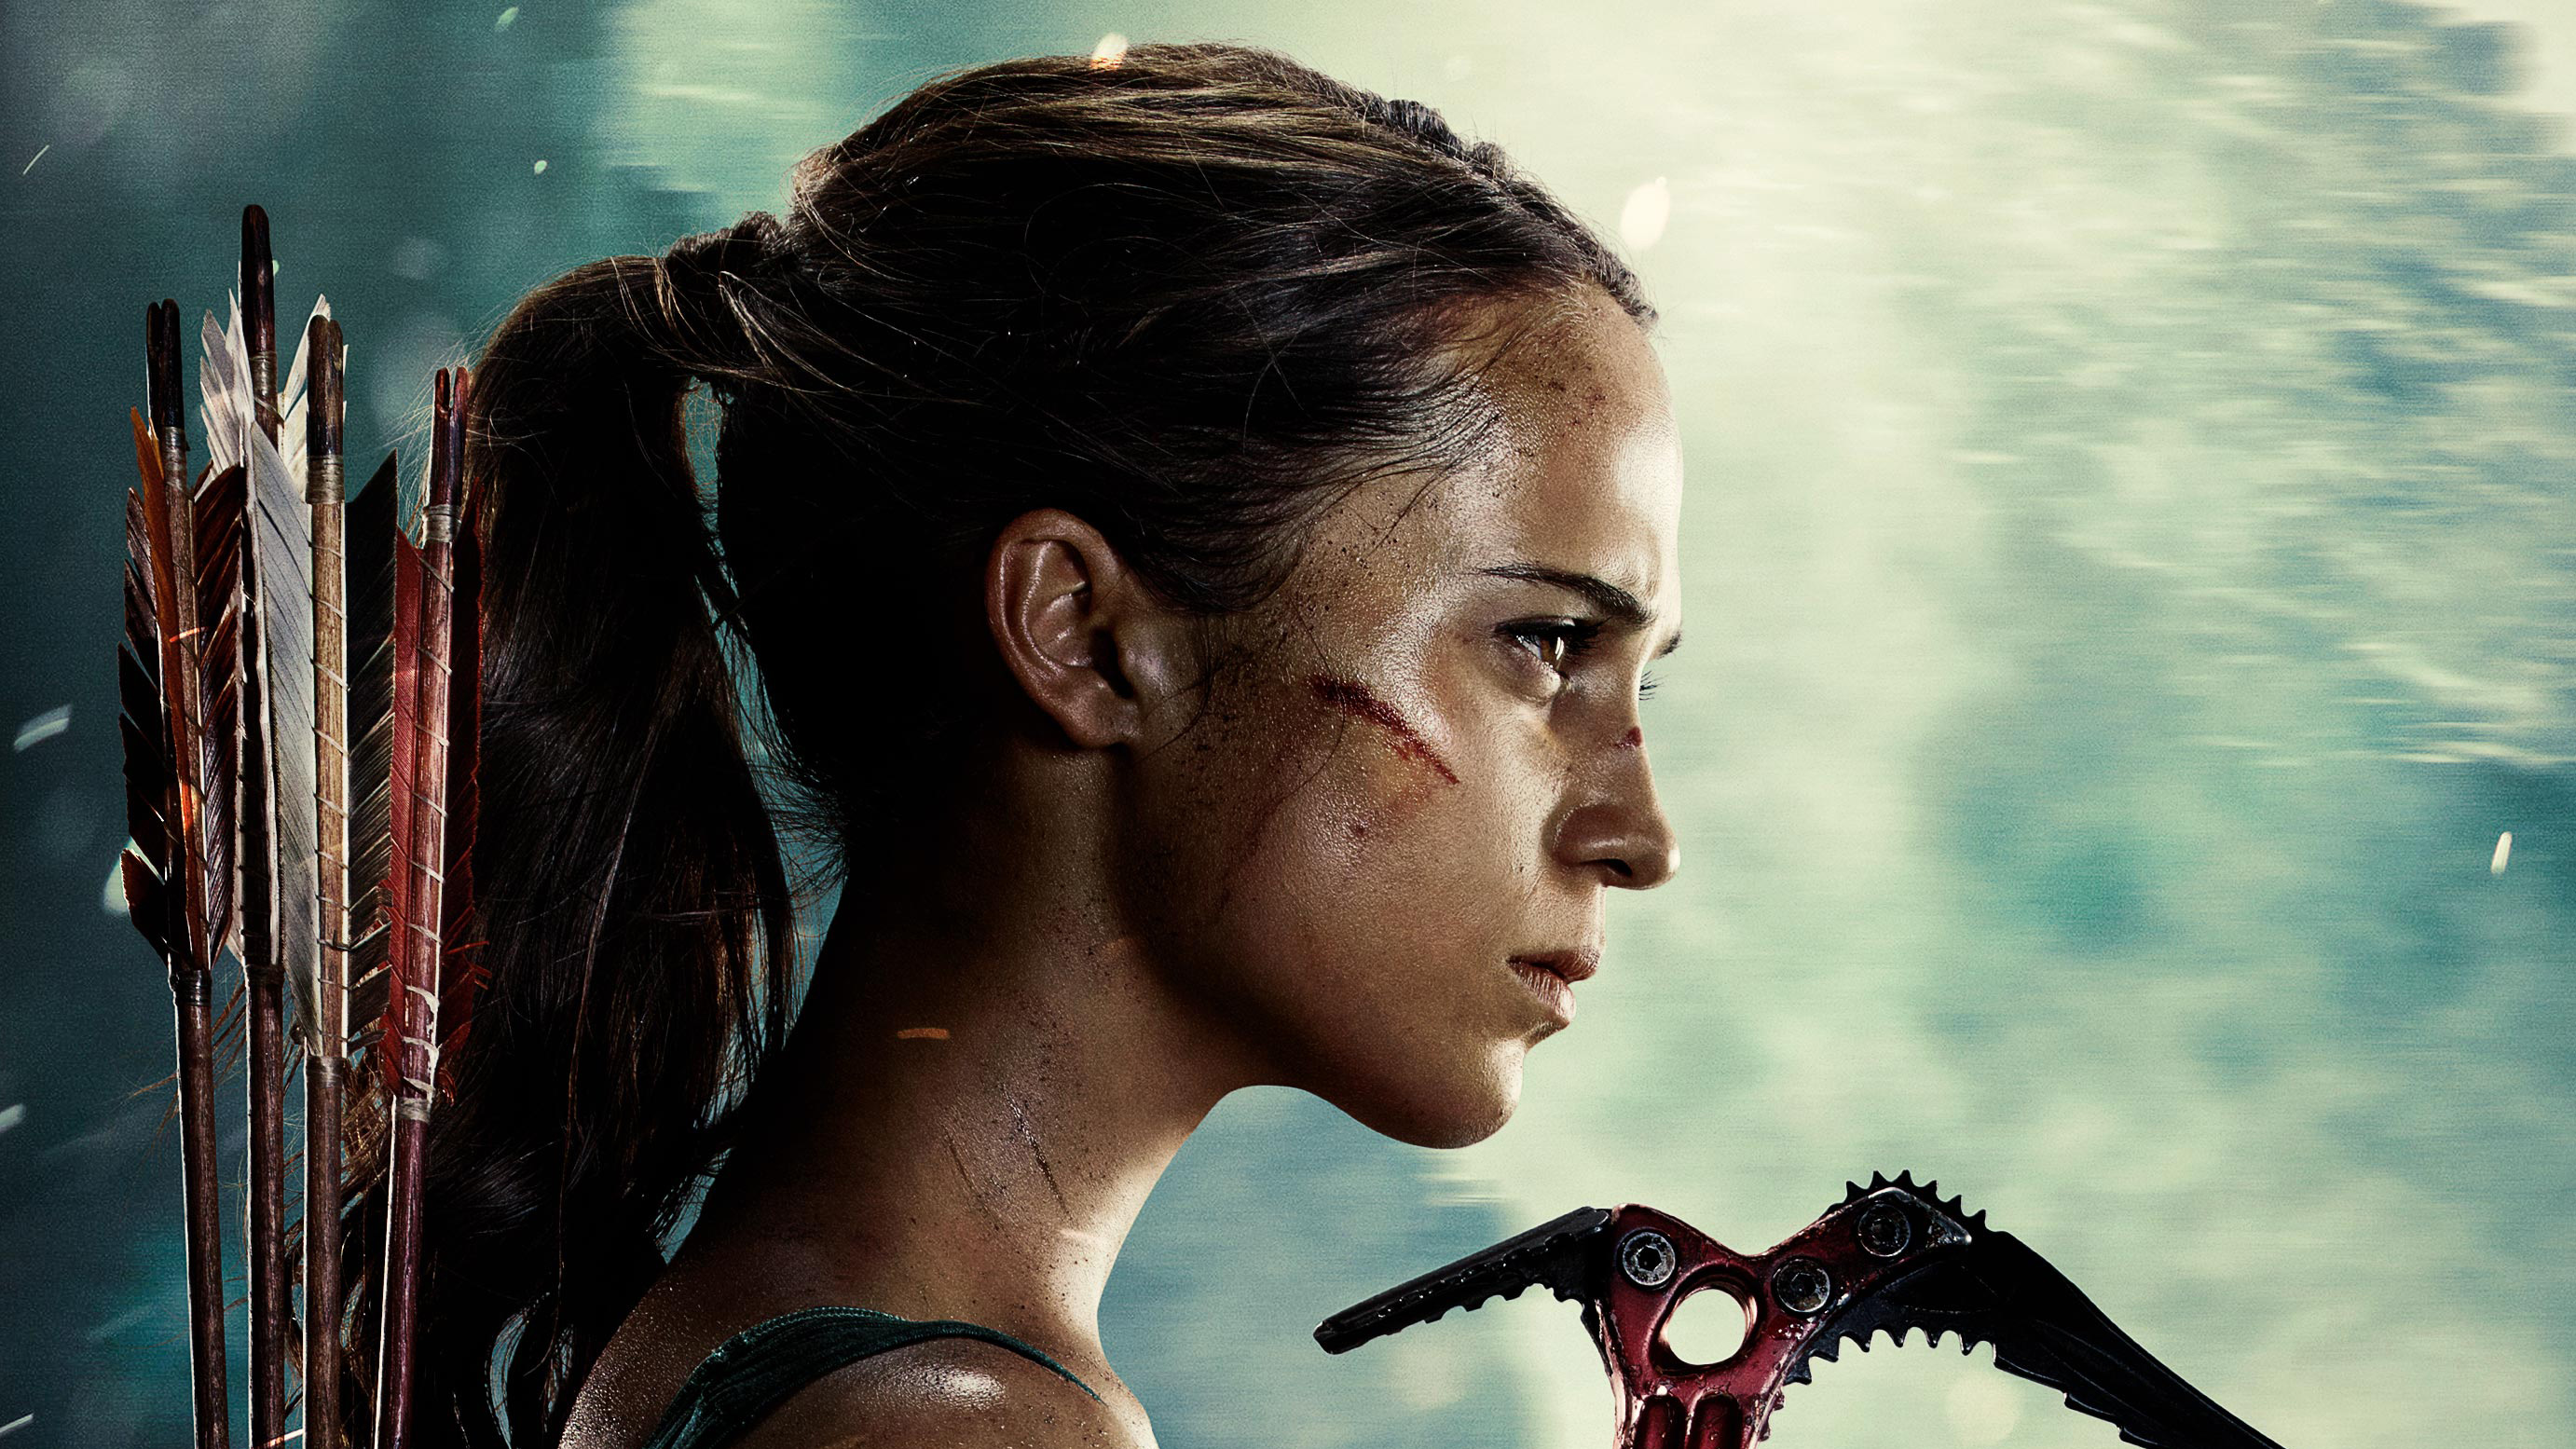 Tomb Raider Movie HD Movies k Wallpapers Images